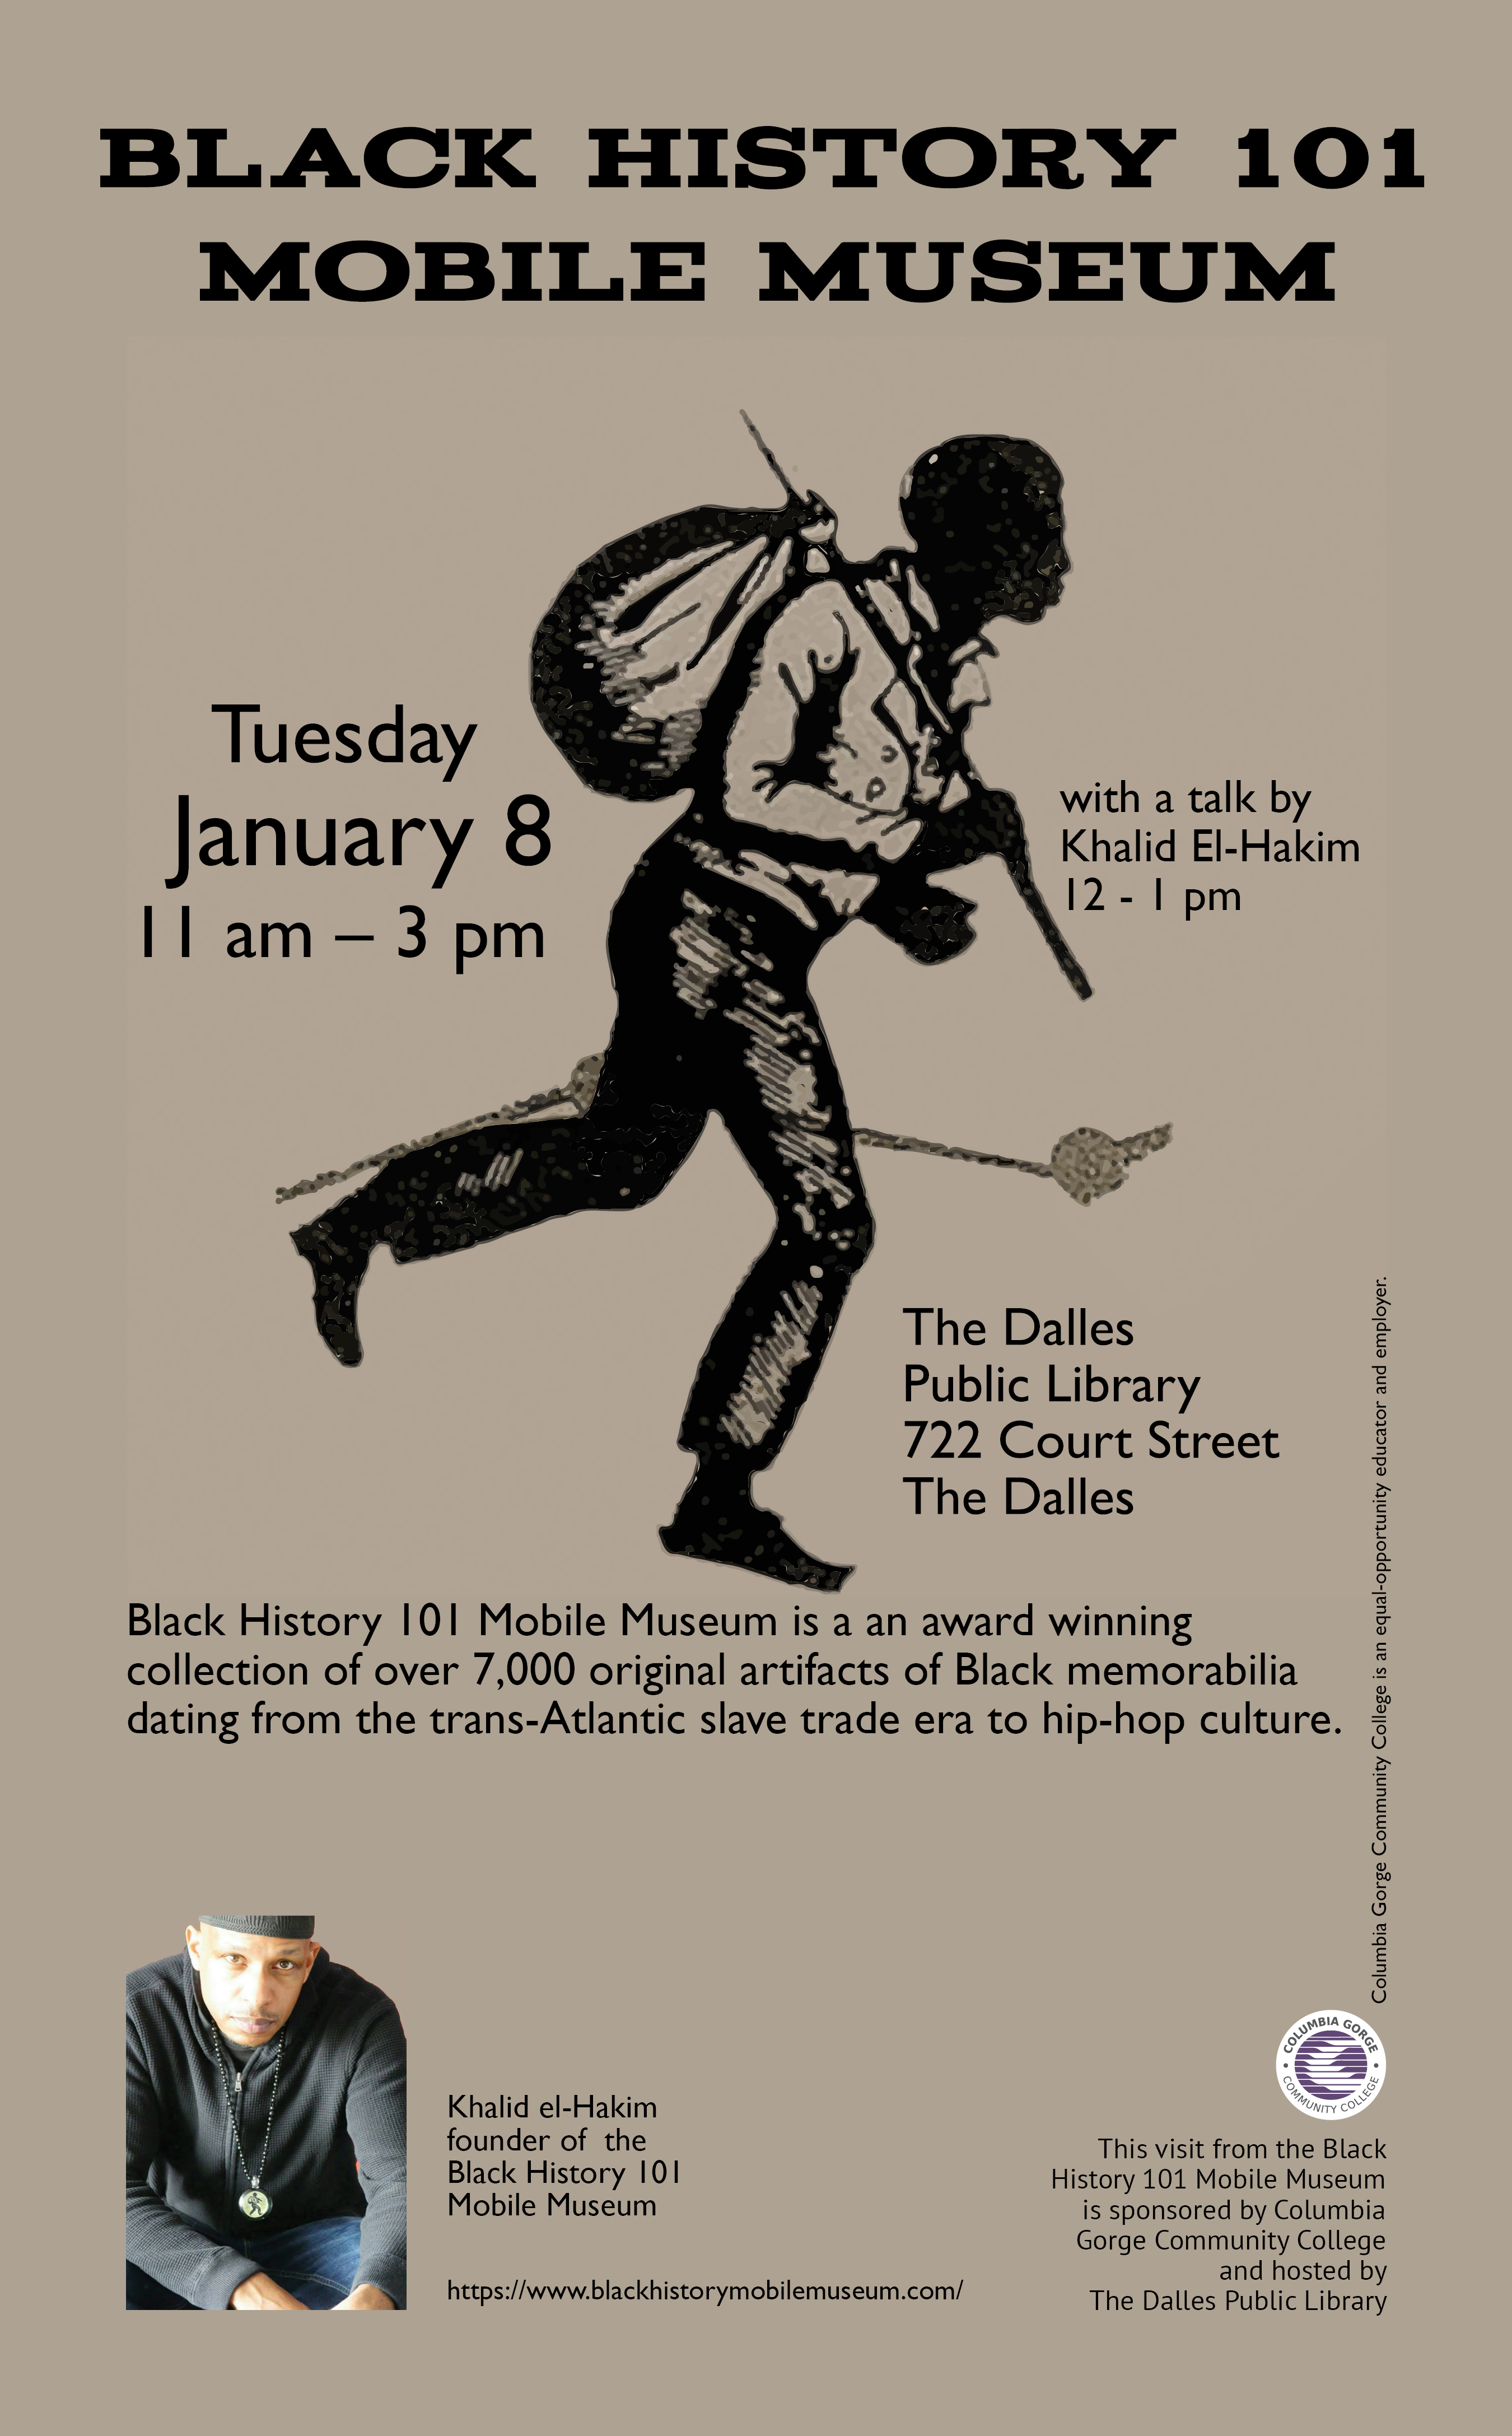 Black History 101 Mobile Museum poster, featuring the museum logo and photo of founder Khalid el-Hakim